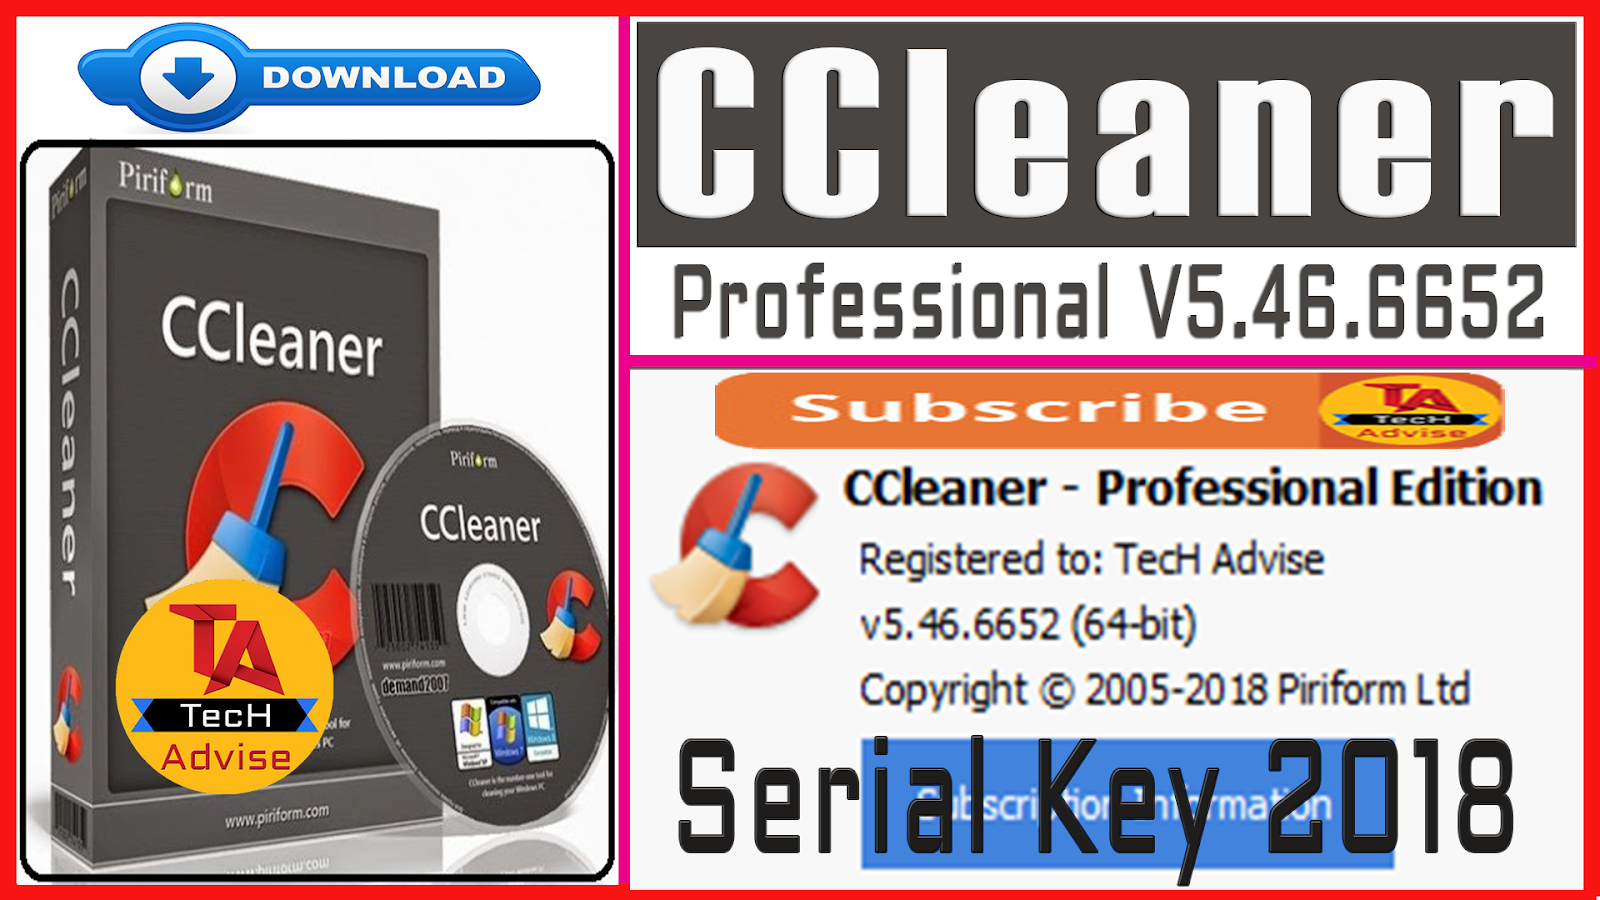 ccleaner pro licence key 2018